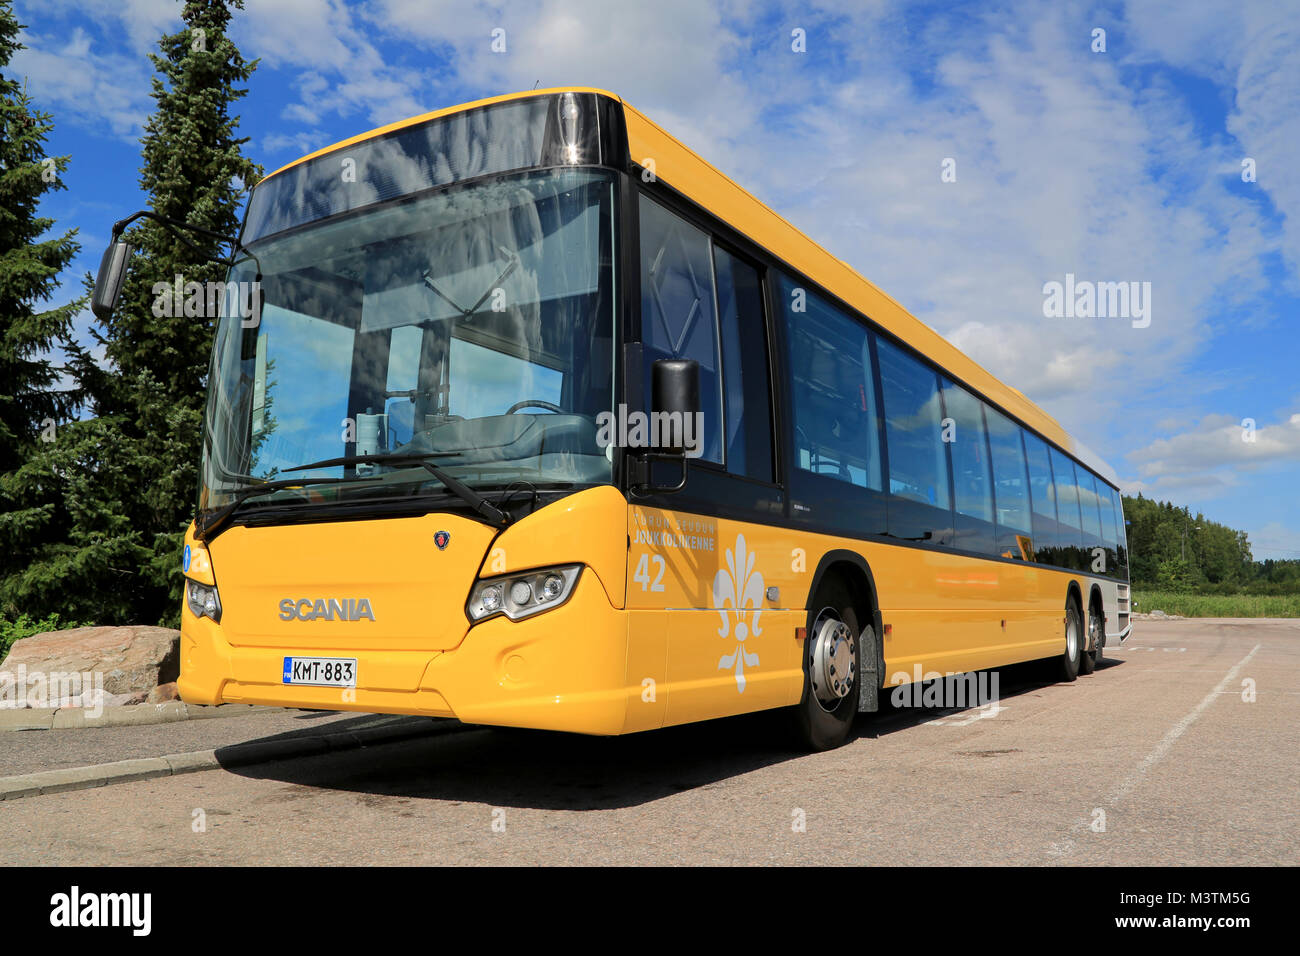 Low Floor City Bus Stock Photos Scania Irizar Wiring Diagram Paimio Finland July 19 2014 Yellow Citywide Waits For Passengers